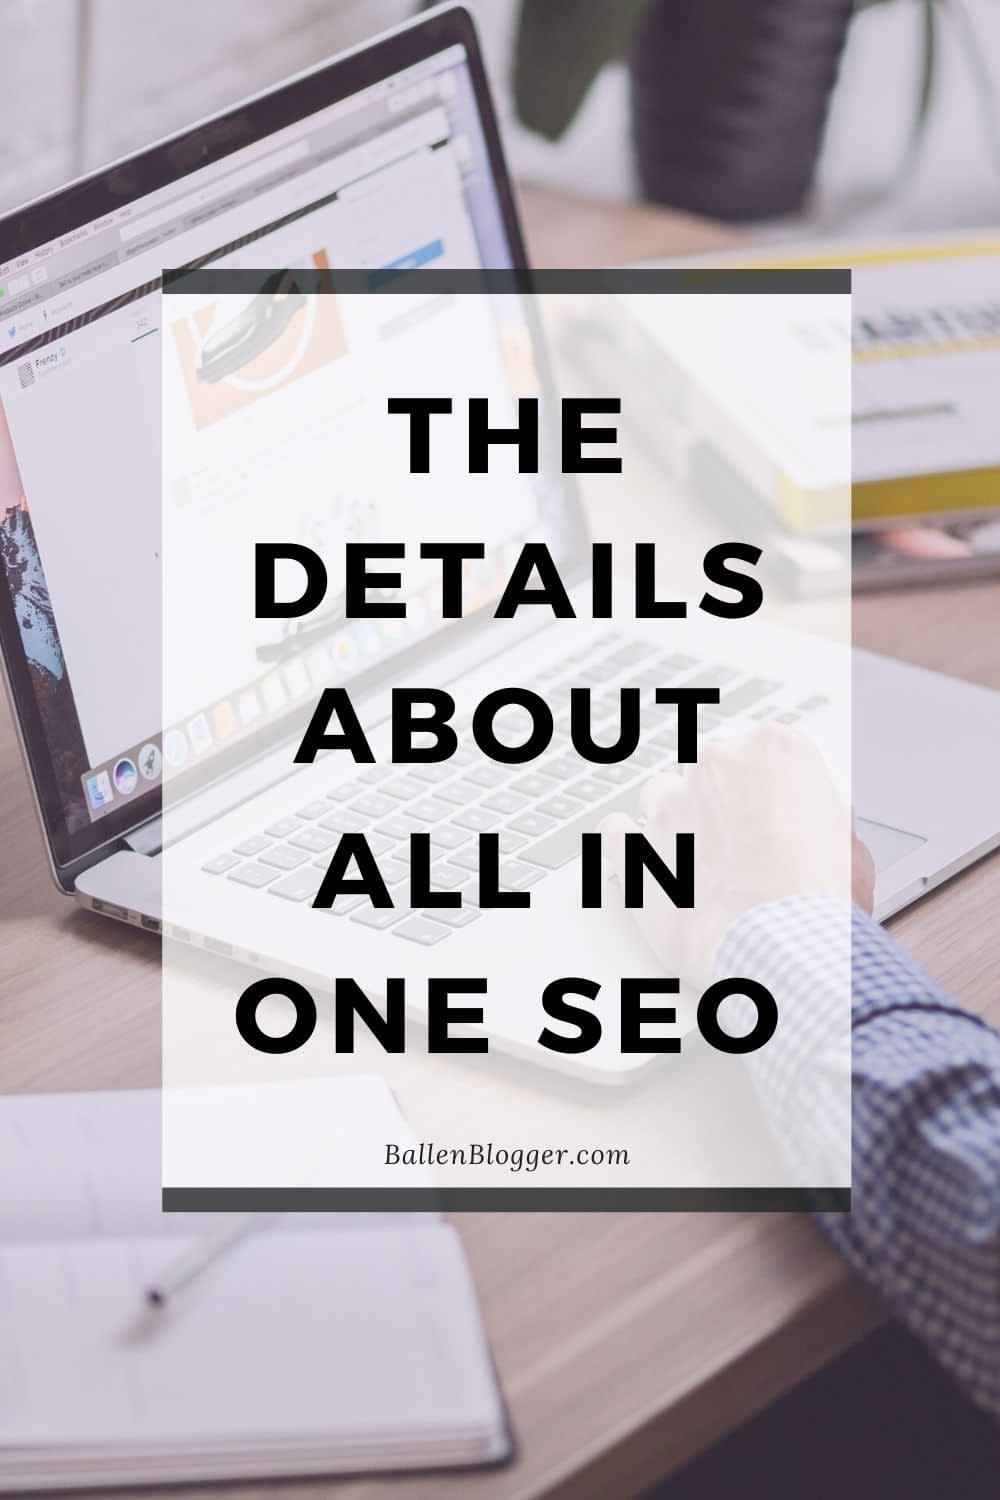 This is one of the most popular SEO plugin options out there. Based on the information that has been published by WordPress.org (one of the most popular tools for building websites), All in One SEO Pack has a rating of 4.4 stars based on more than 400 reviews.